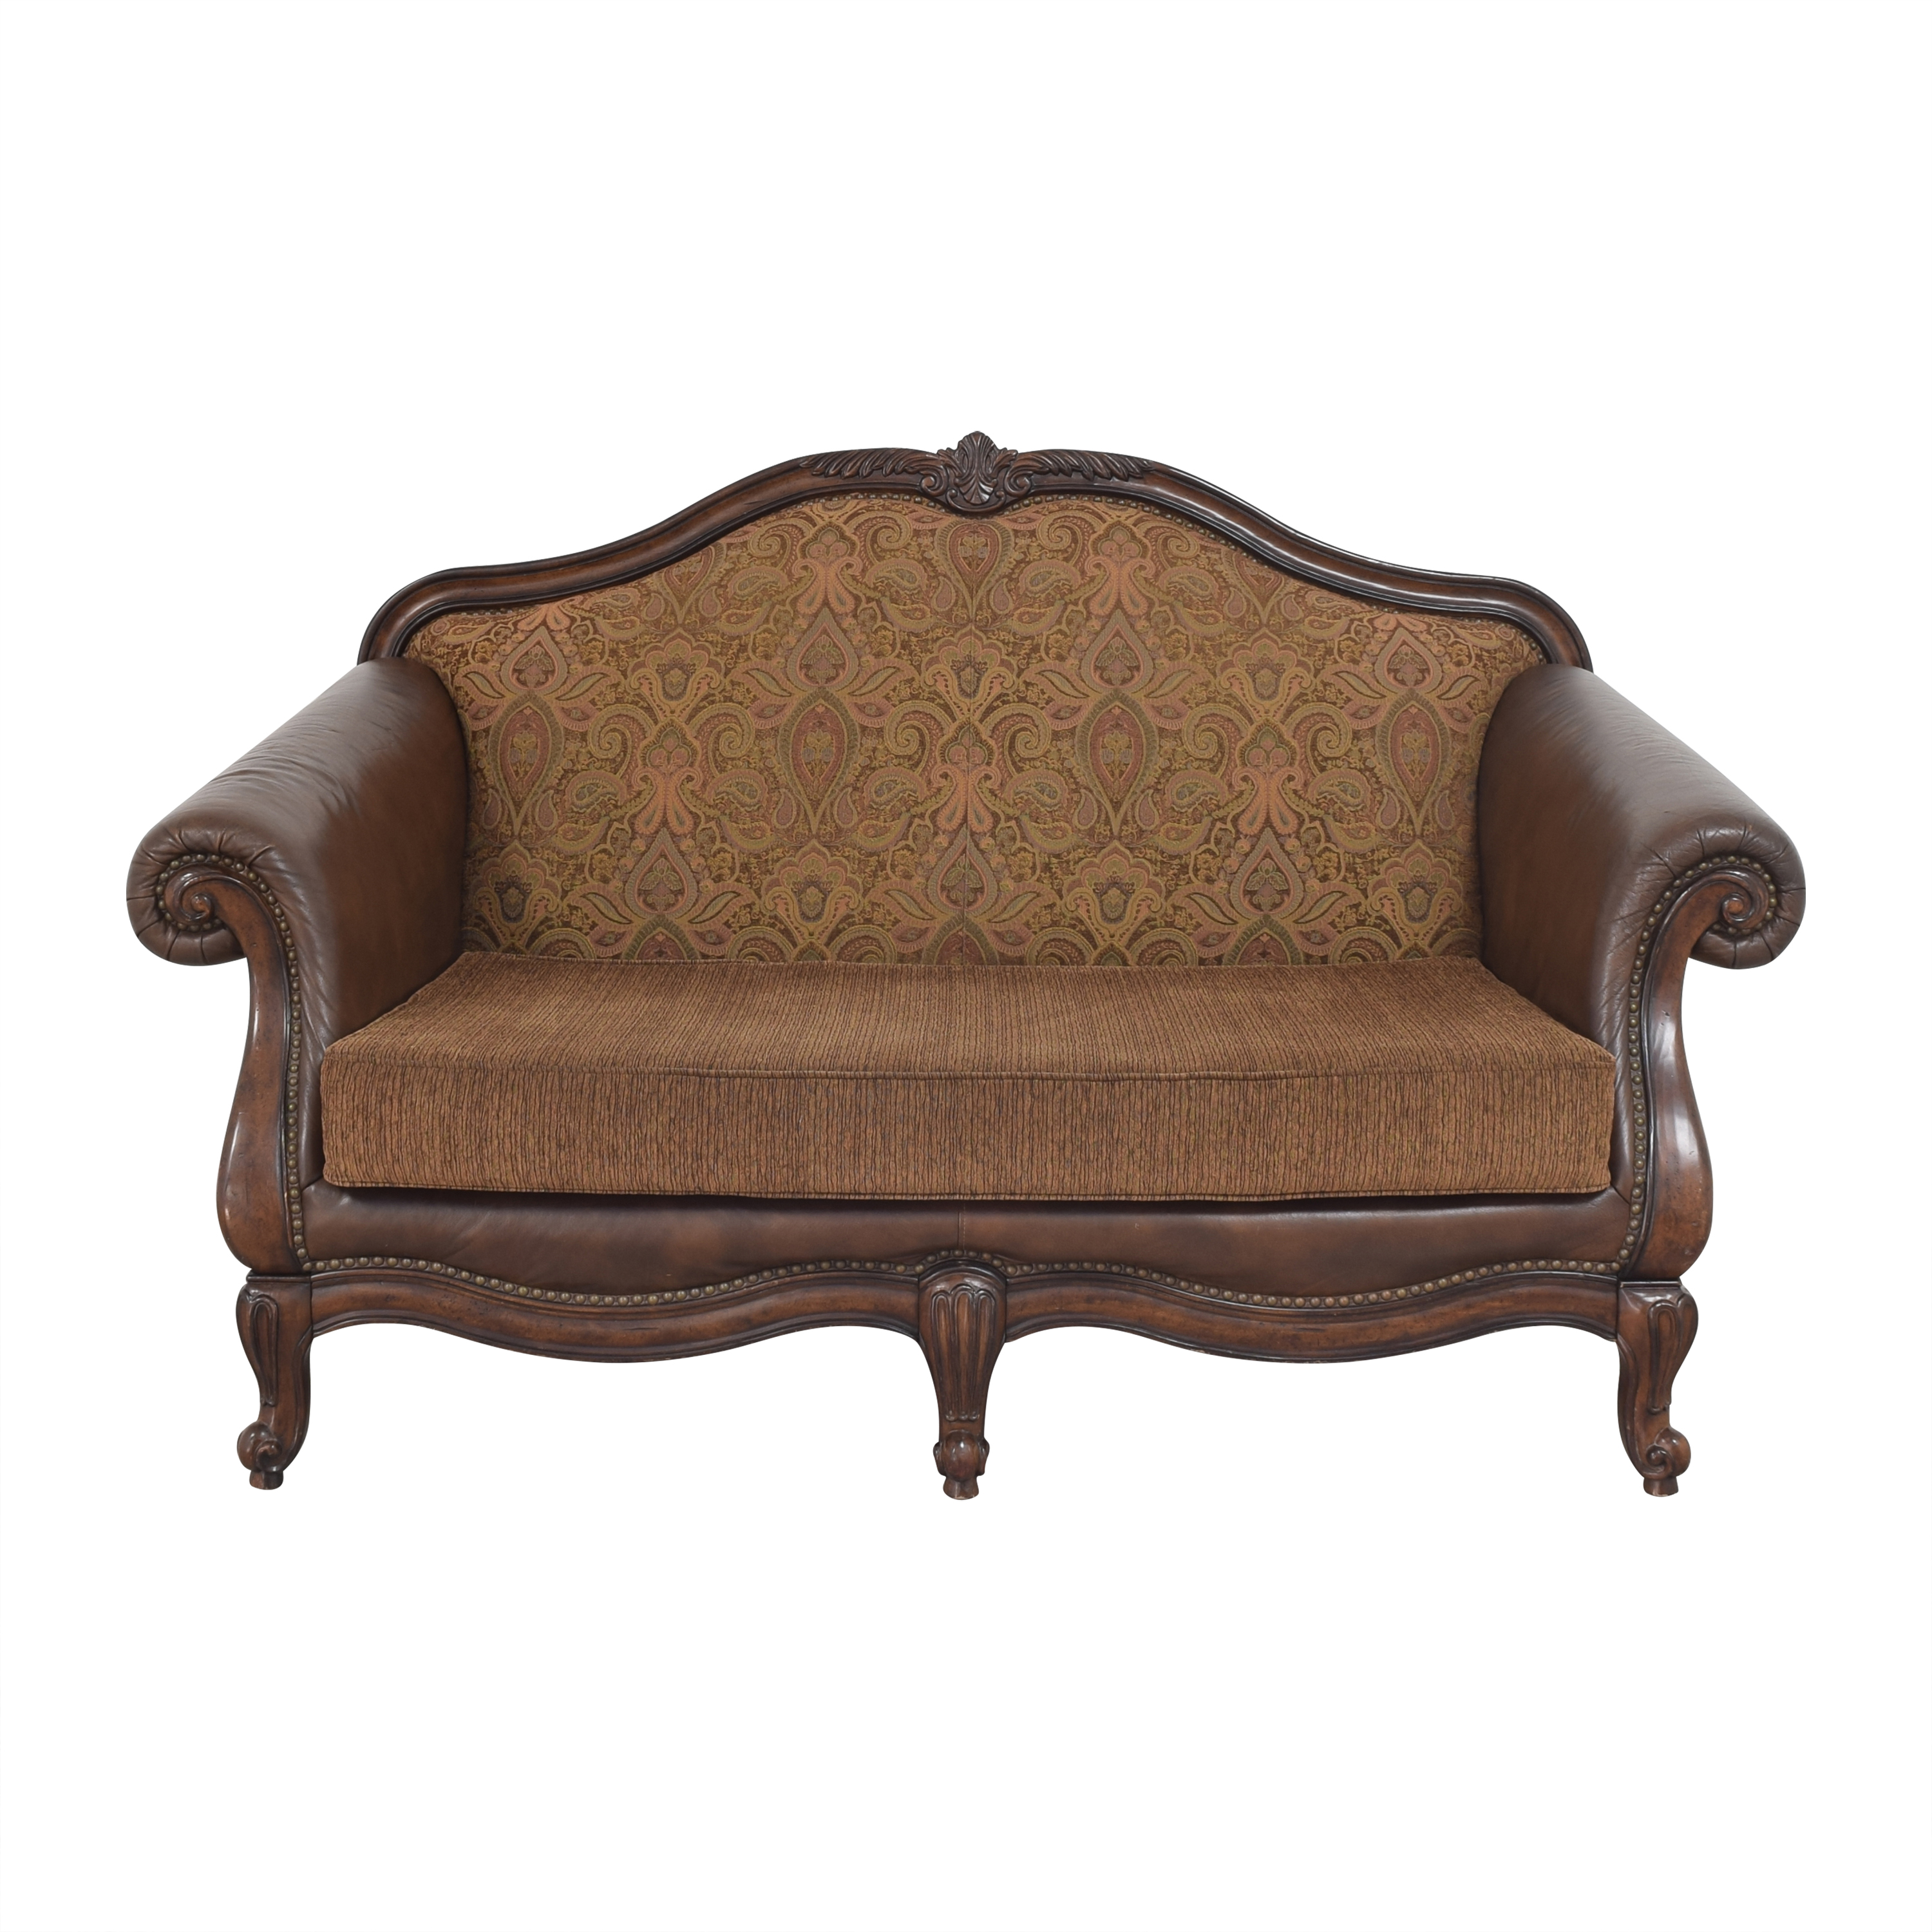 Raymour & Flanigan Raymour & Flanigan Natalia Loveseat for sale